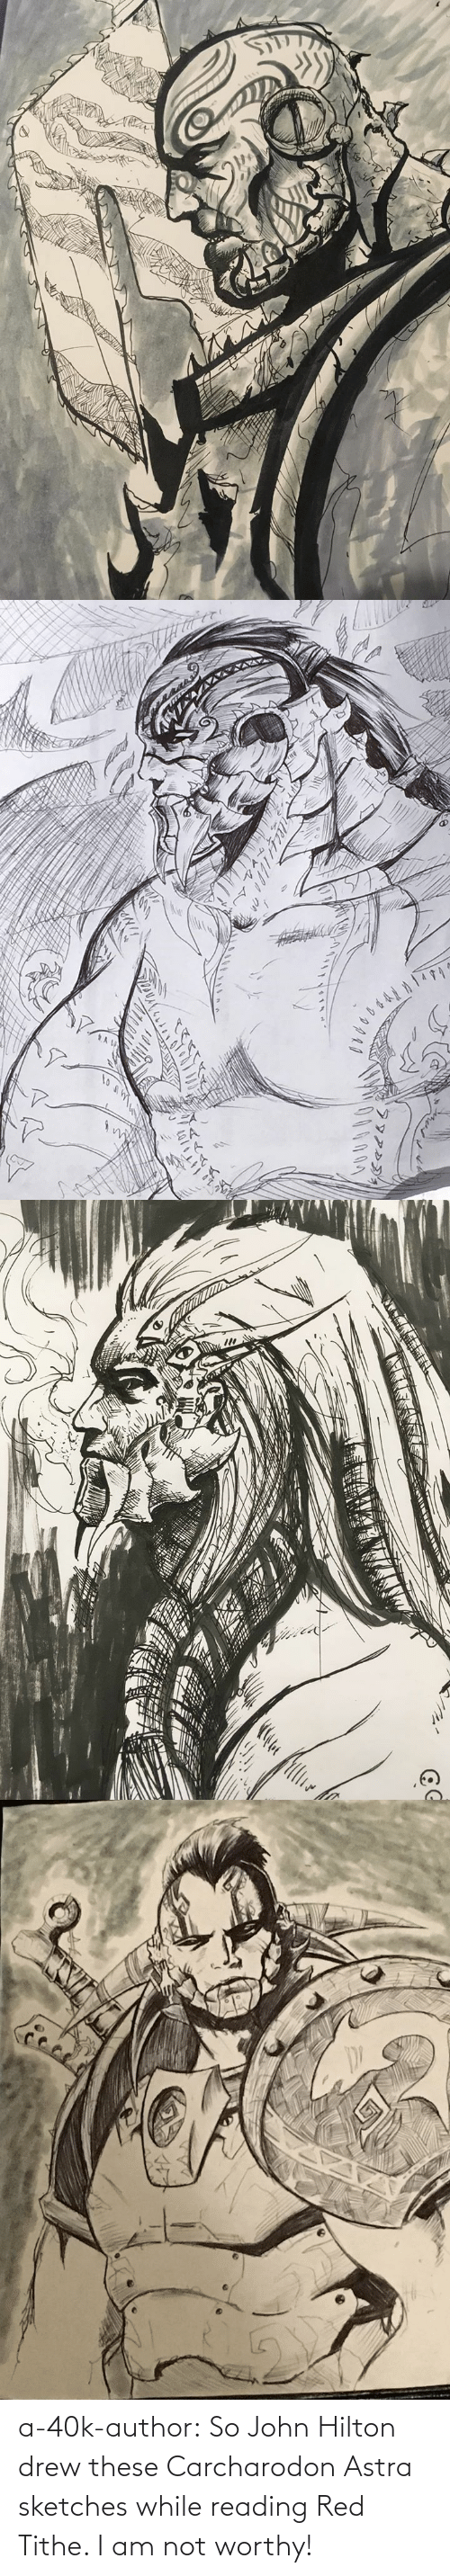 drew: a-40k-author:  So John Hilton drew these Carcharodon Astra sketches while reading Red Tithe. I am not worthy!